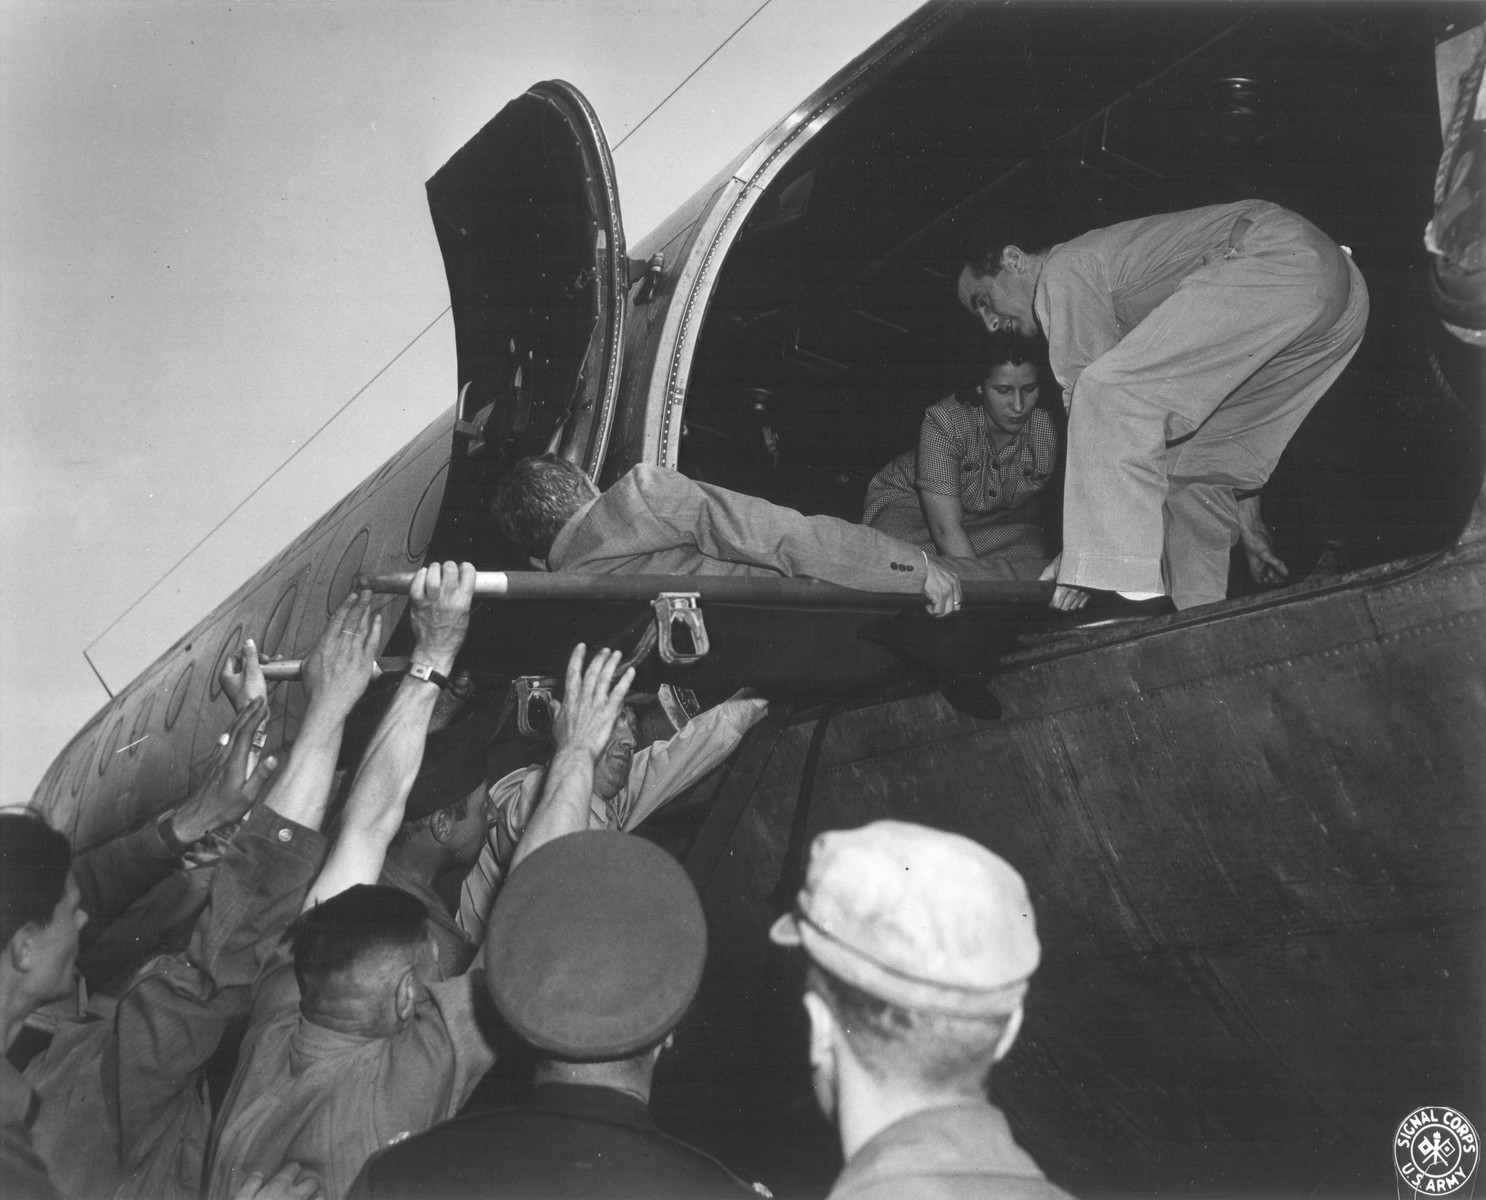 A Jewish DP who is being evacuated to Frankfurt am Main during the Berlin Blockade, is lifted on a stretcher and placed in an airplane.